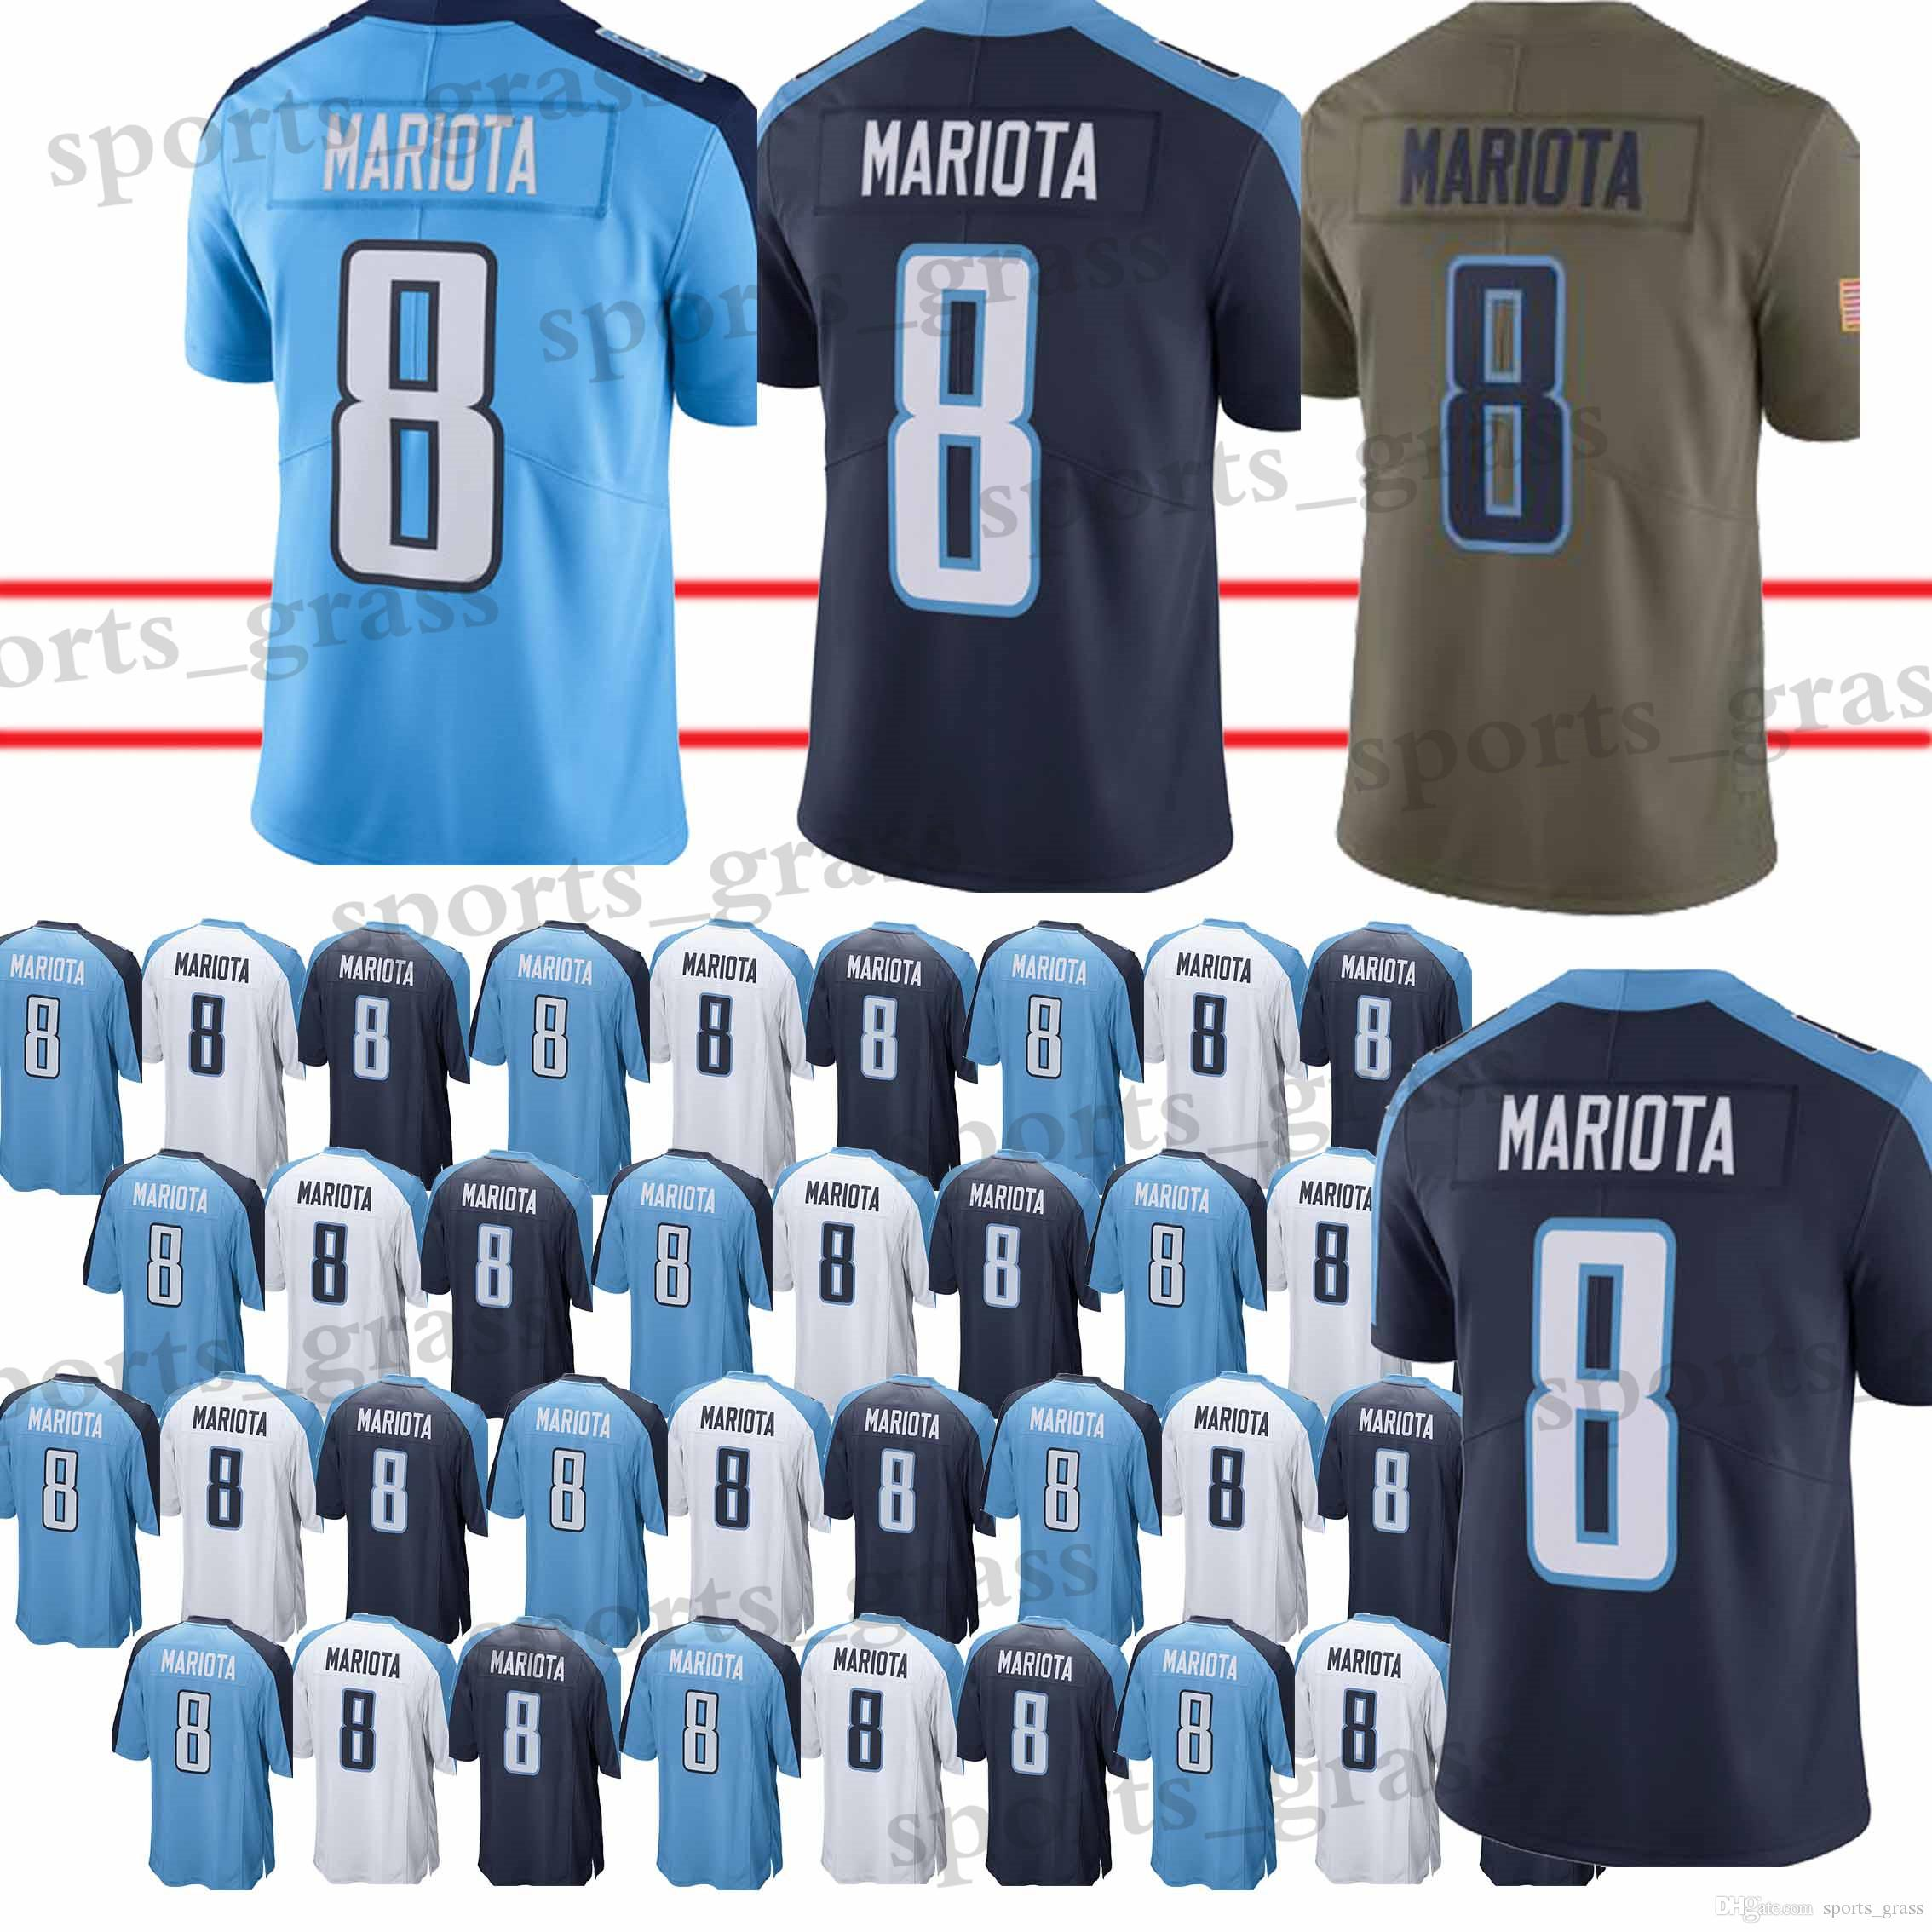 0e105b68ea1 2019 High Quality Tennessee Titan Jerseys 8 Marcus Mariota Jersey 100% Stitched  Shirt Men 2018 New From Sports grass